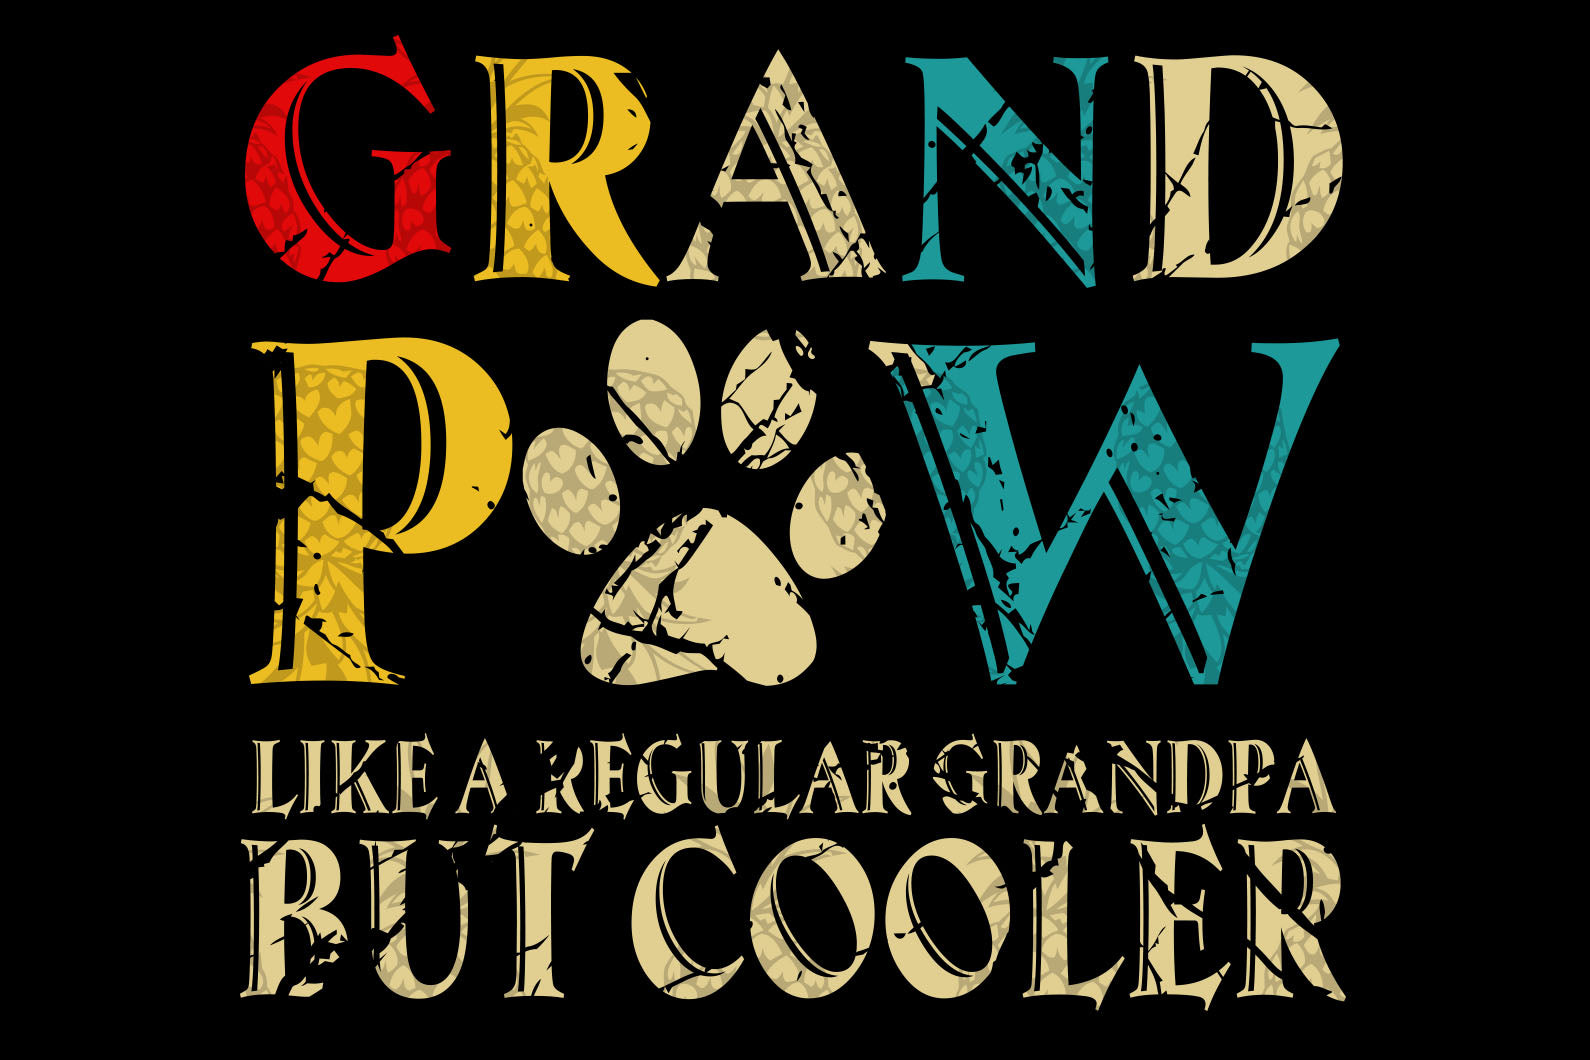 Grandppaw like regular grandpa svg,Happy father's day,fathers day gift,happy fathers day,love father,grandpaw gift,fathers day shirt,dog funny svg,happy fathers day gift,daddy svg,love grandpa, grandpa gift